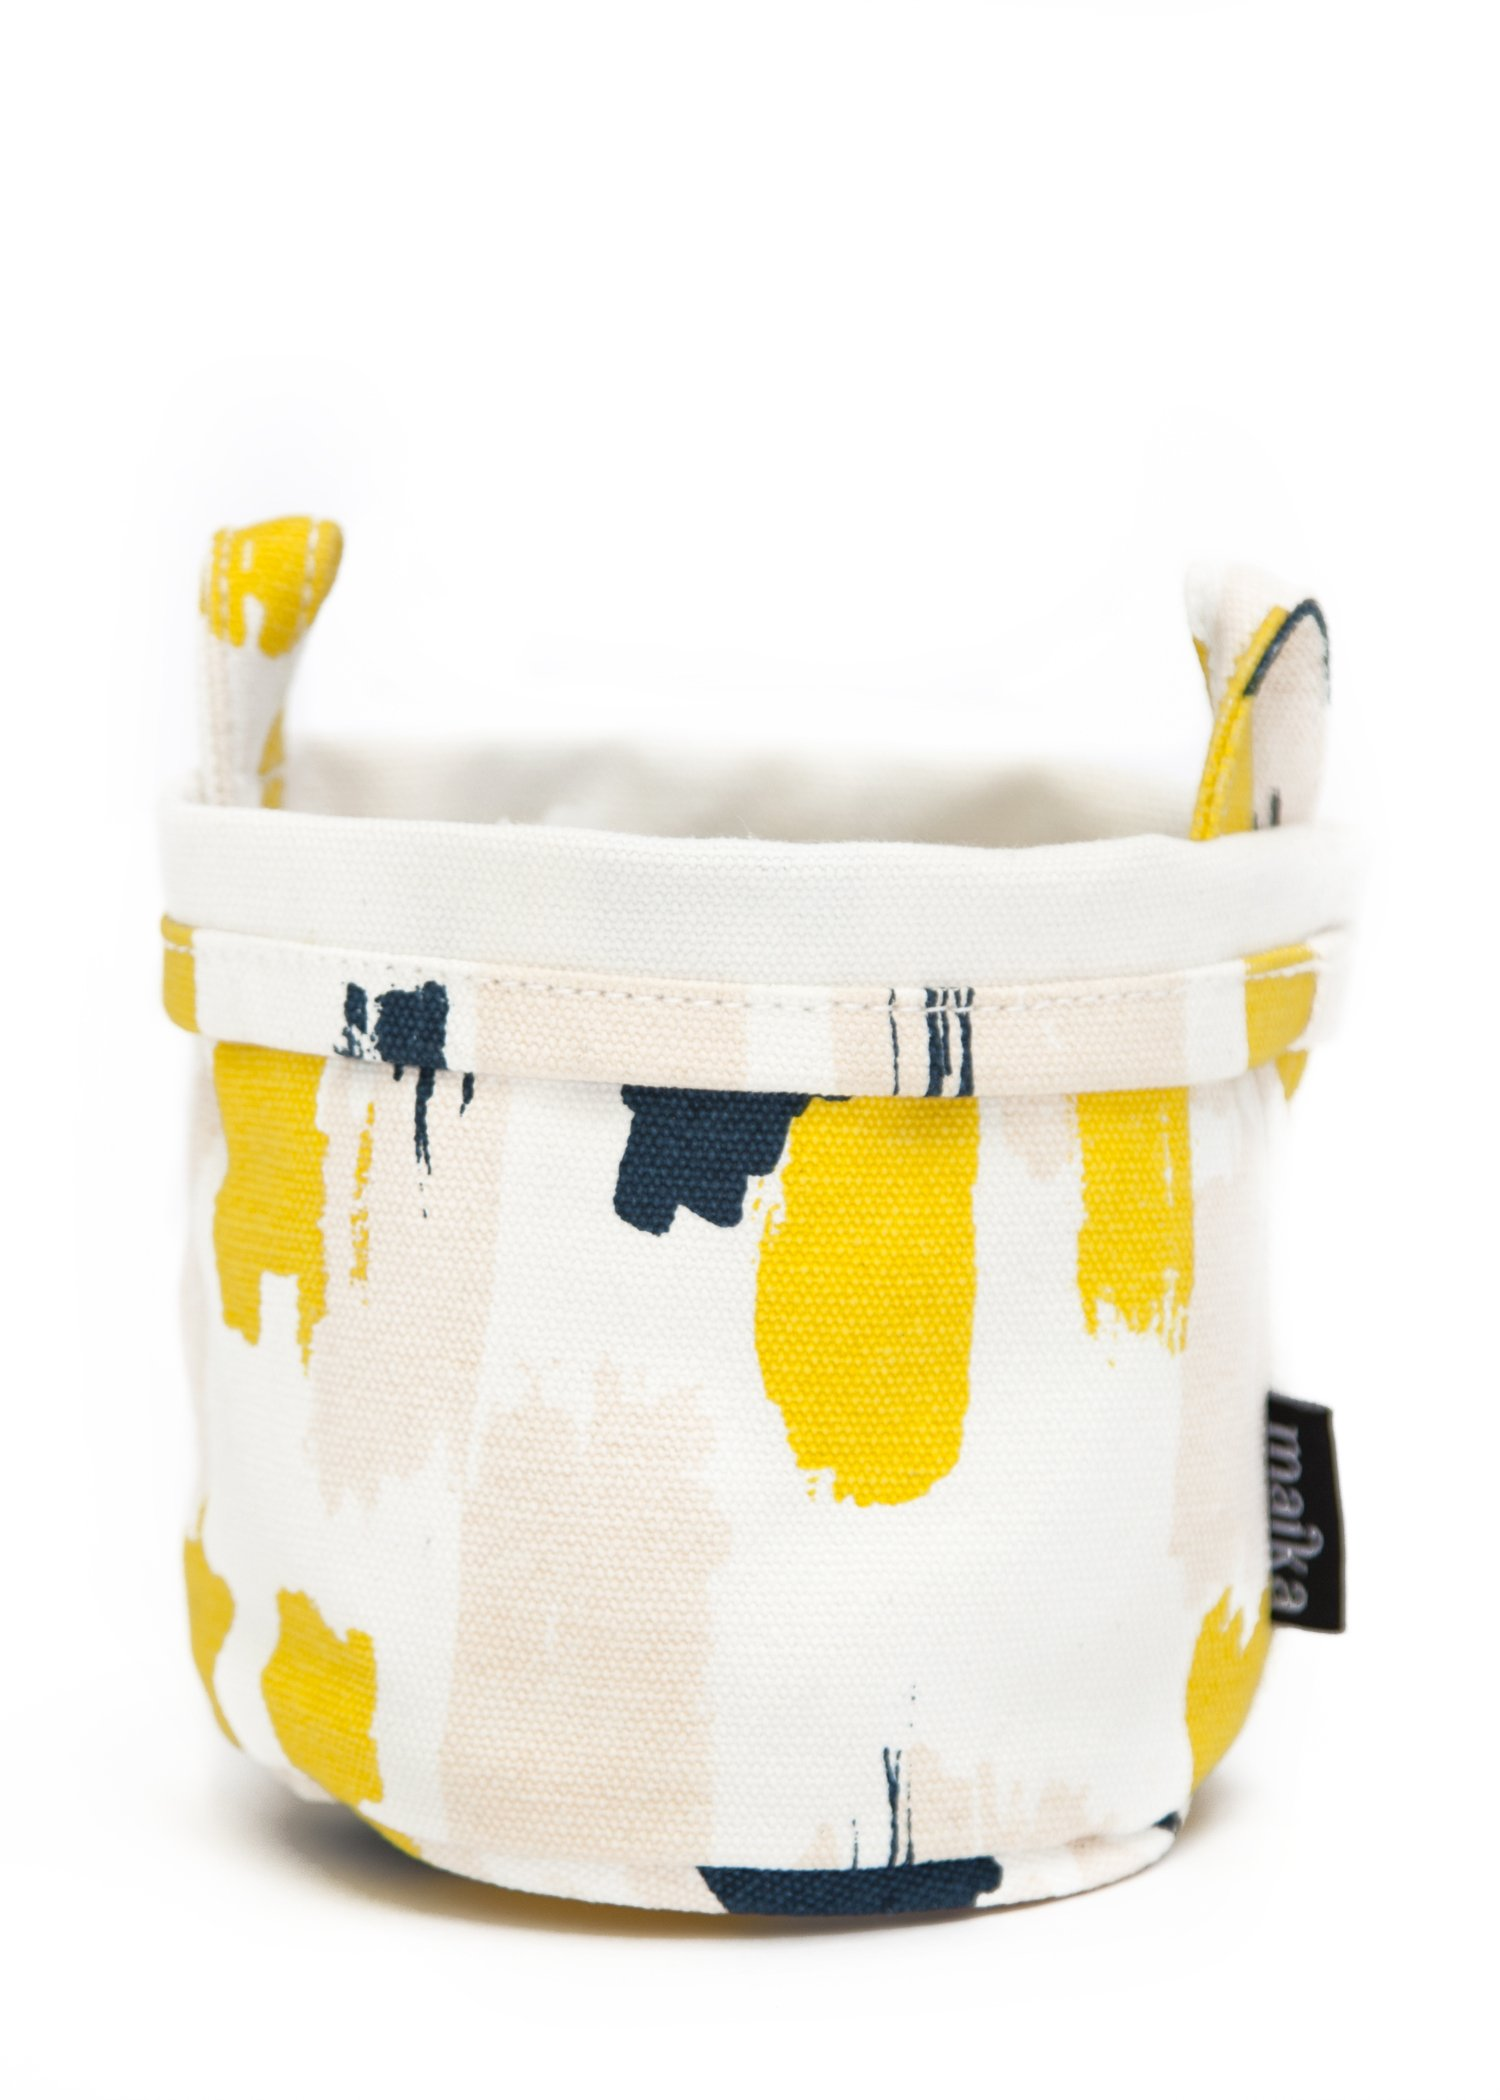 Maika Recycled Canvas Bucket, Rhythm (Large)